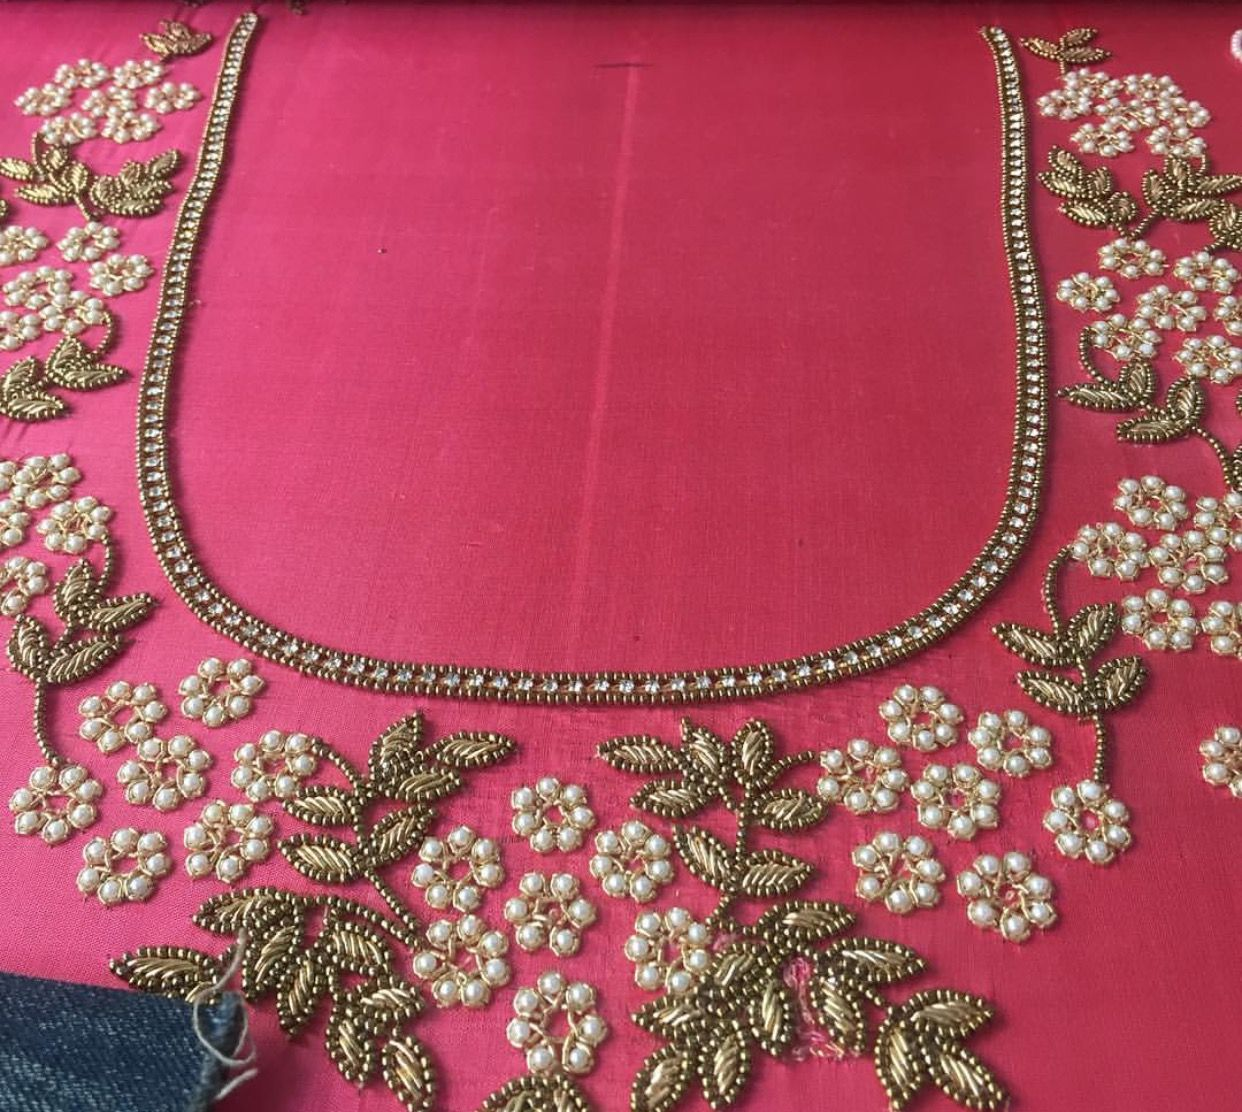 Designs designs pinterest blouse designs embroidery and designs bankloansurffo Images